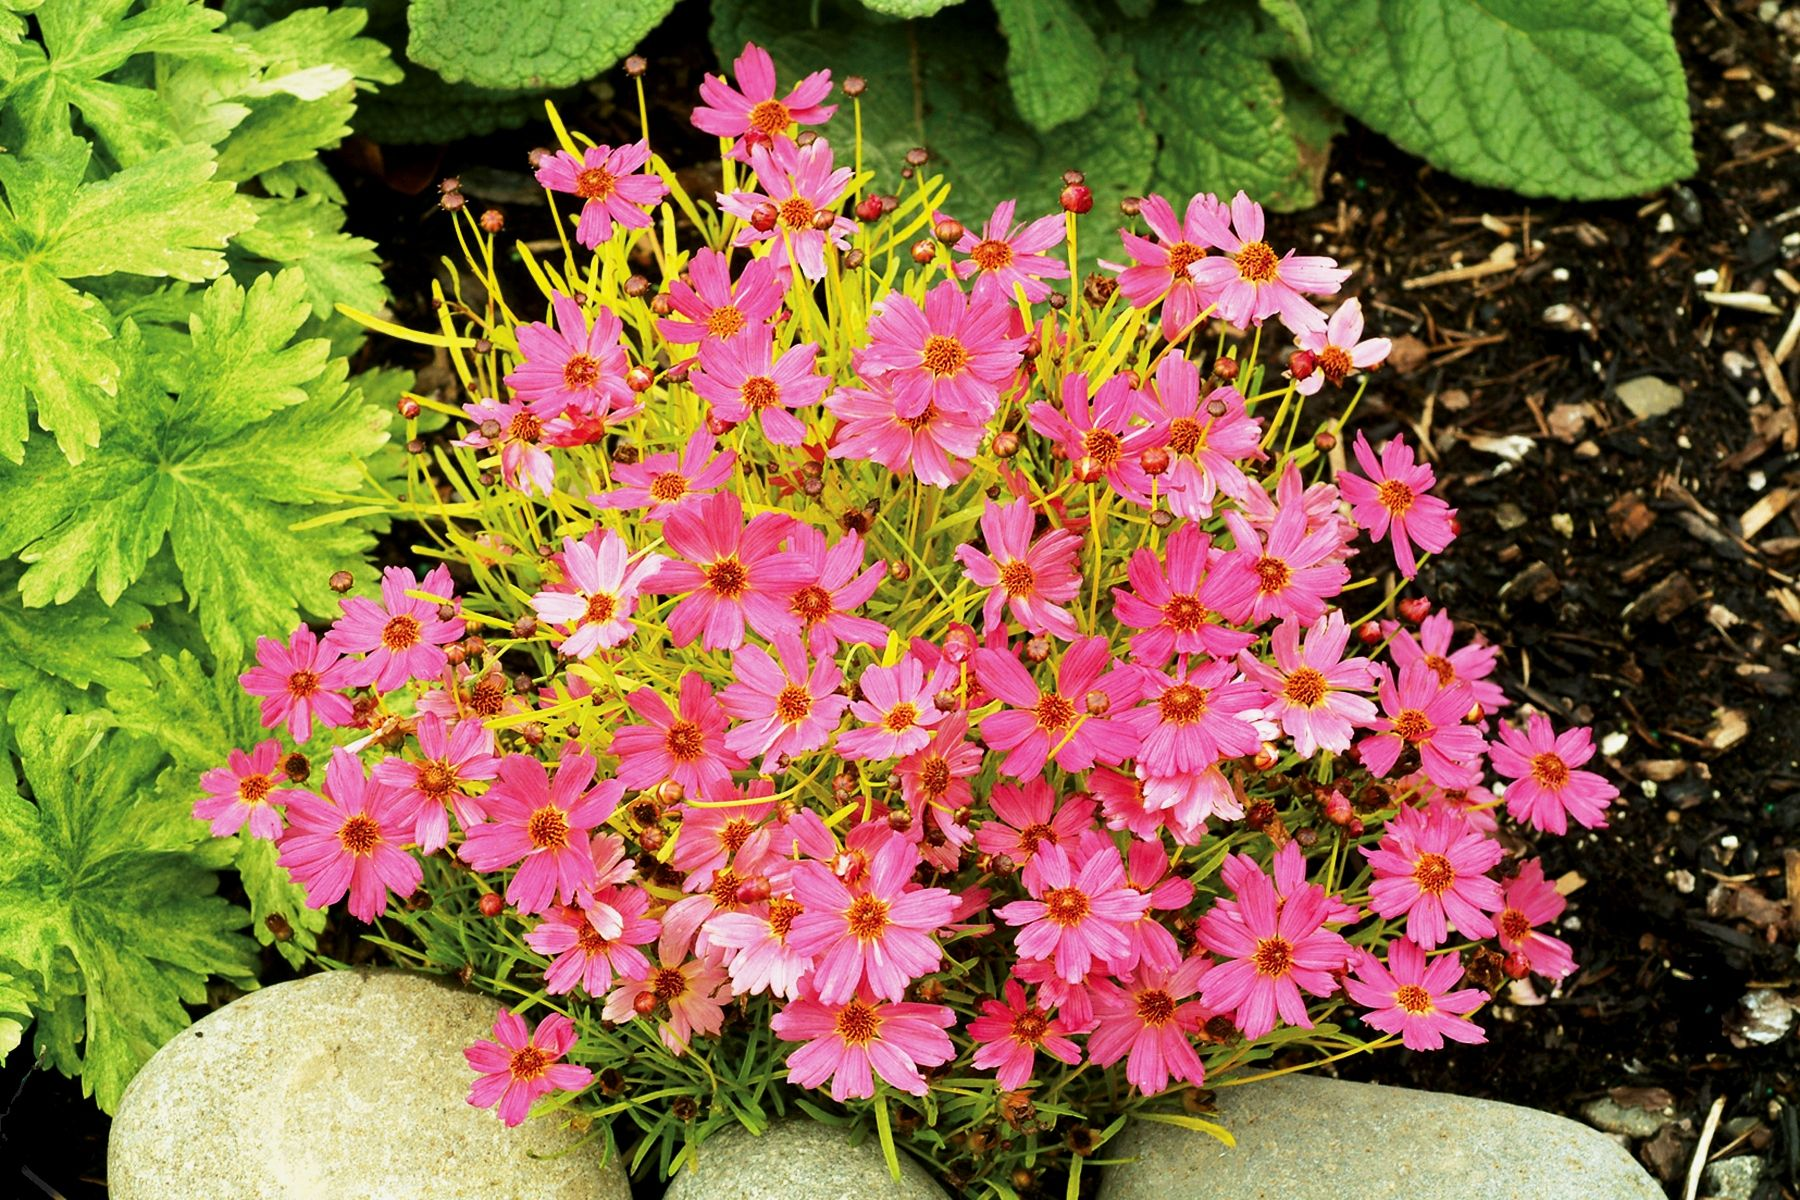 Pink lemonade tickseed monrovia pink lemonade tickseed my coreopsis pink lemonade a great mixer in containers bright warm golden foliage gives a long season of interest until the clear pink flowers arrive mightylinksfo